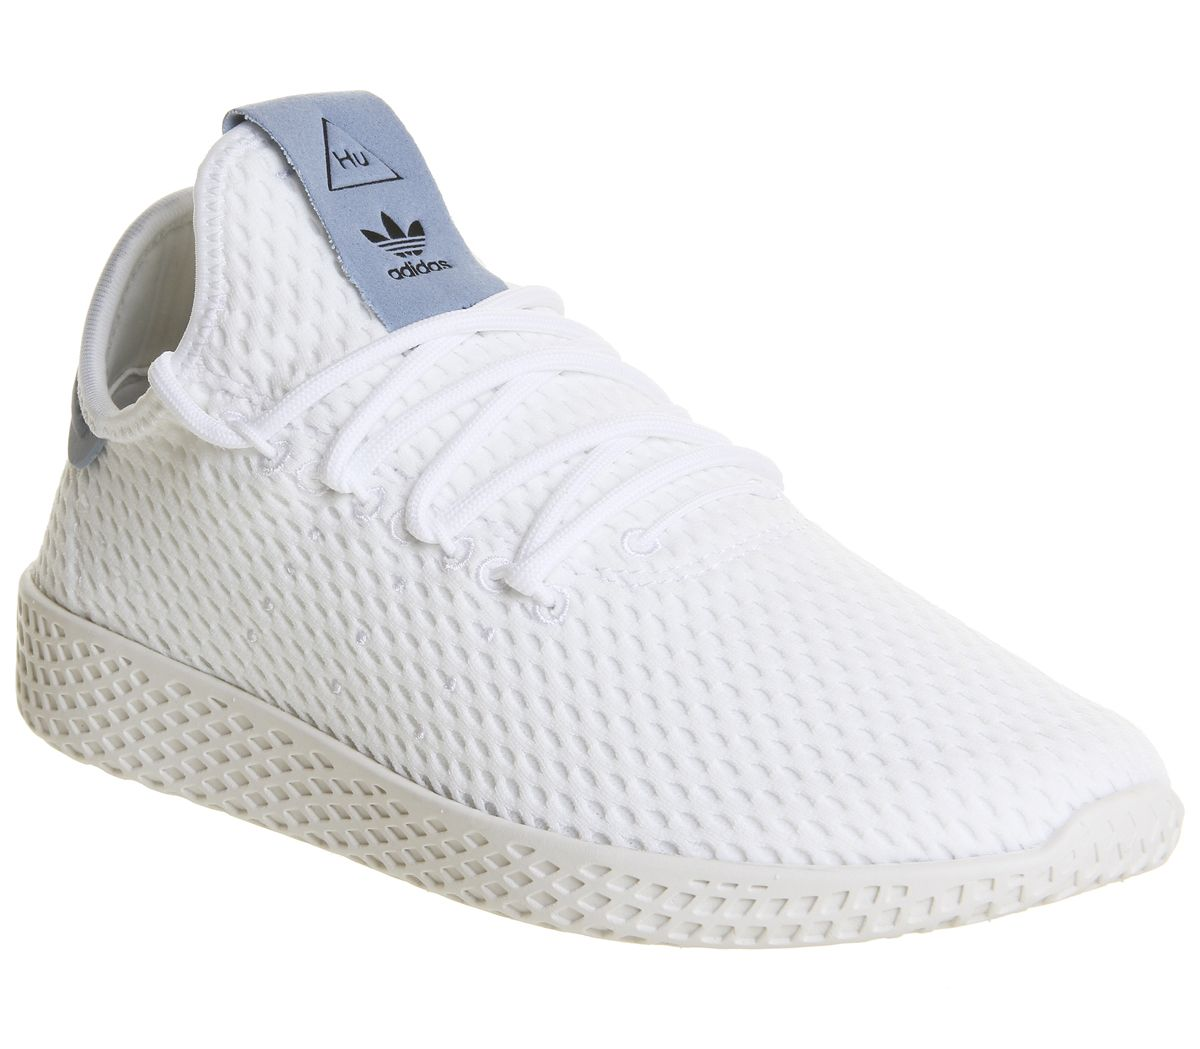 1bf738ad3 adidas Pw Tennis Hu White Tactile Blue - Hers trainers